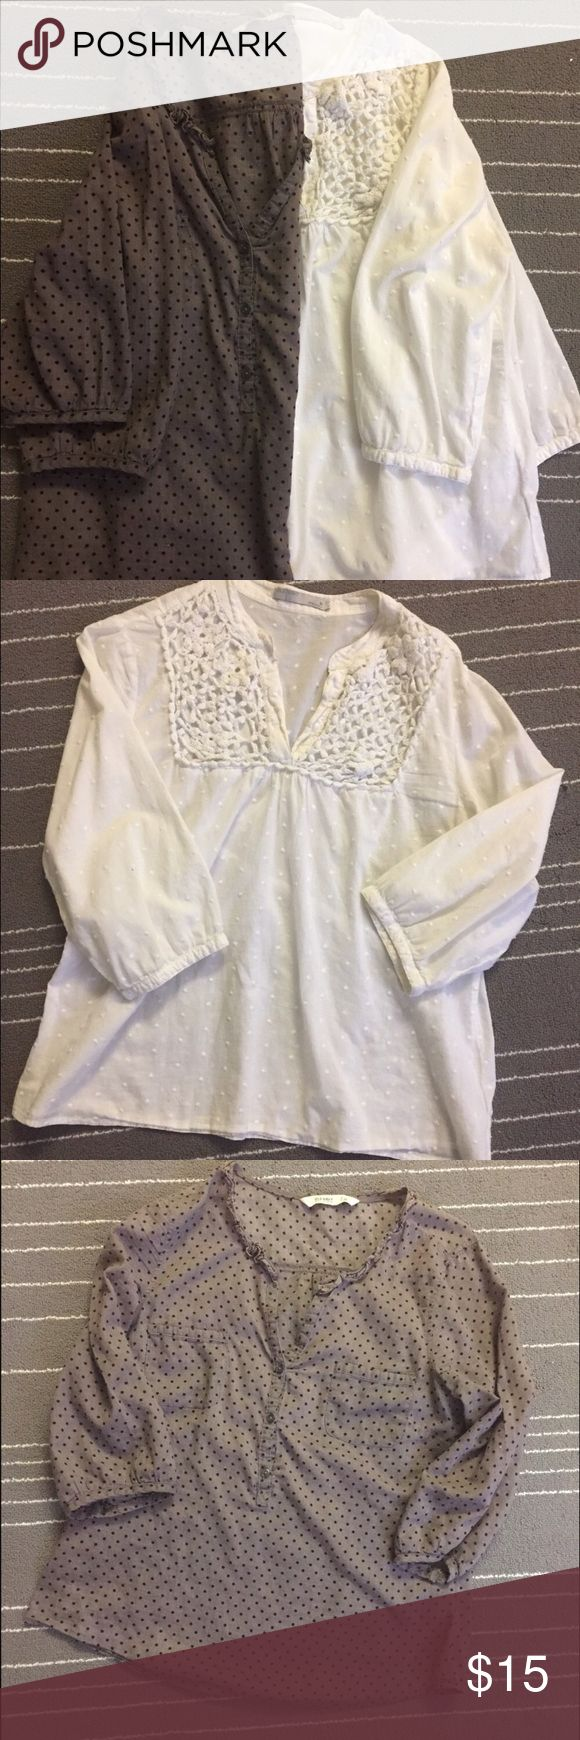 Two in the price of one old navy women tops Old navy cotton blouse very light and airy. Nice for hot summer weather. They are previously owned and great use condition. Normal wears nothing too noticeable. Old Navy Tops